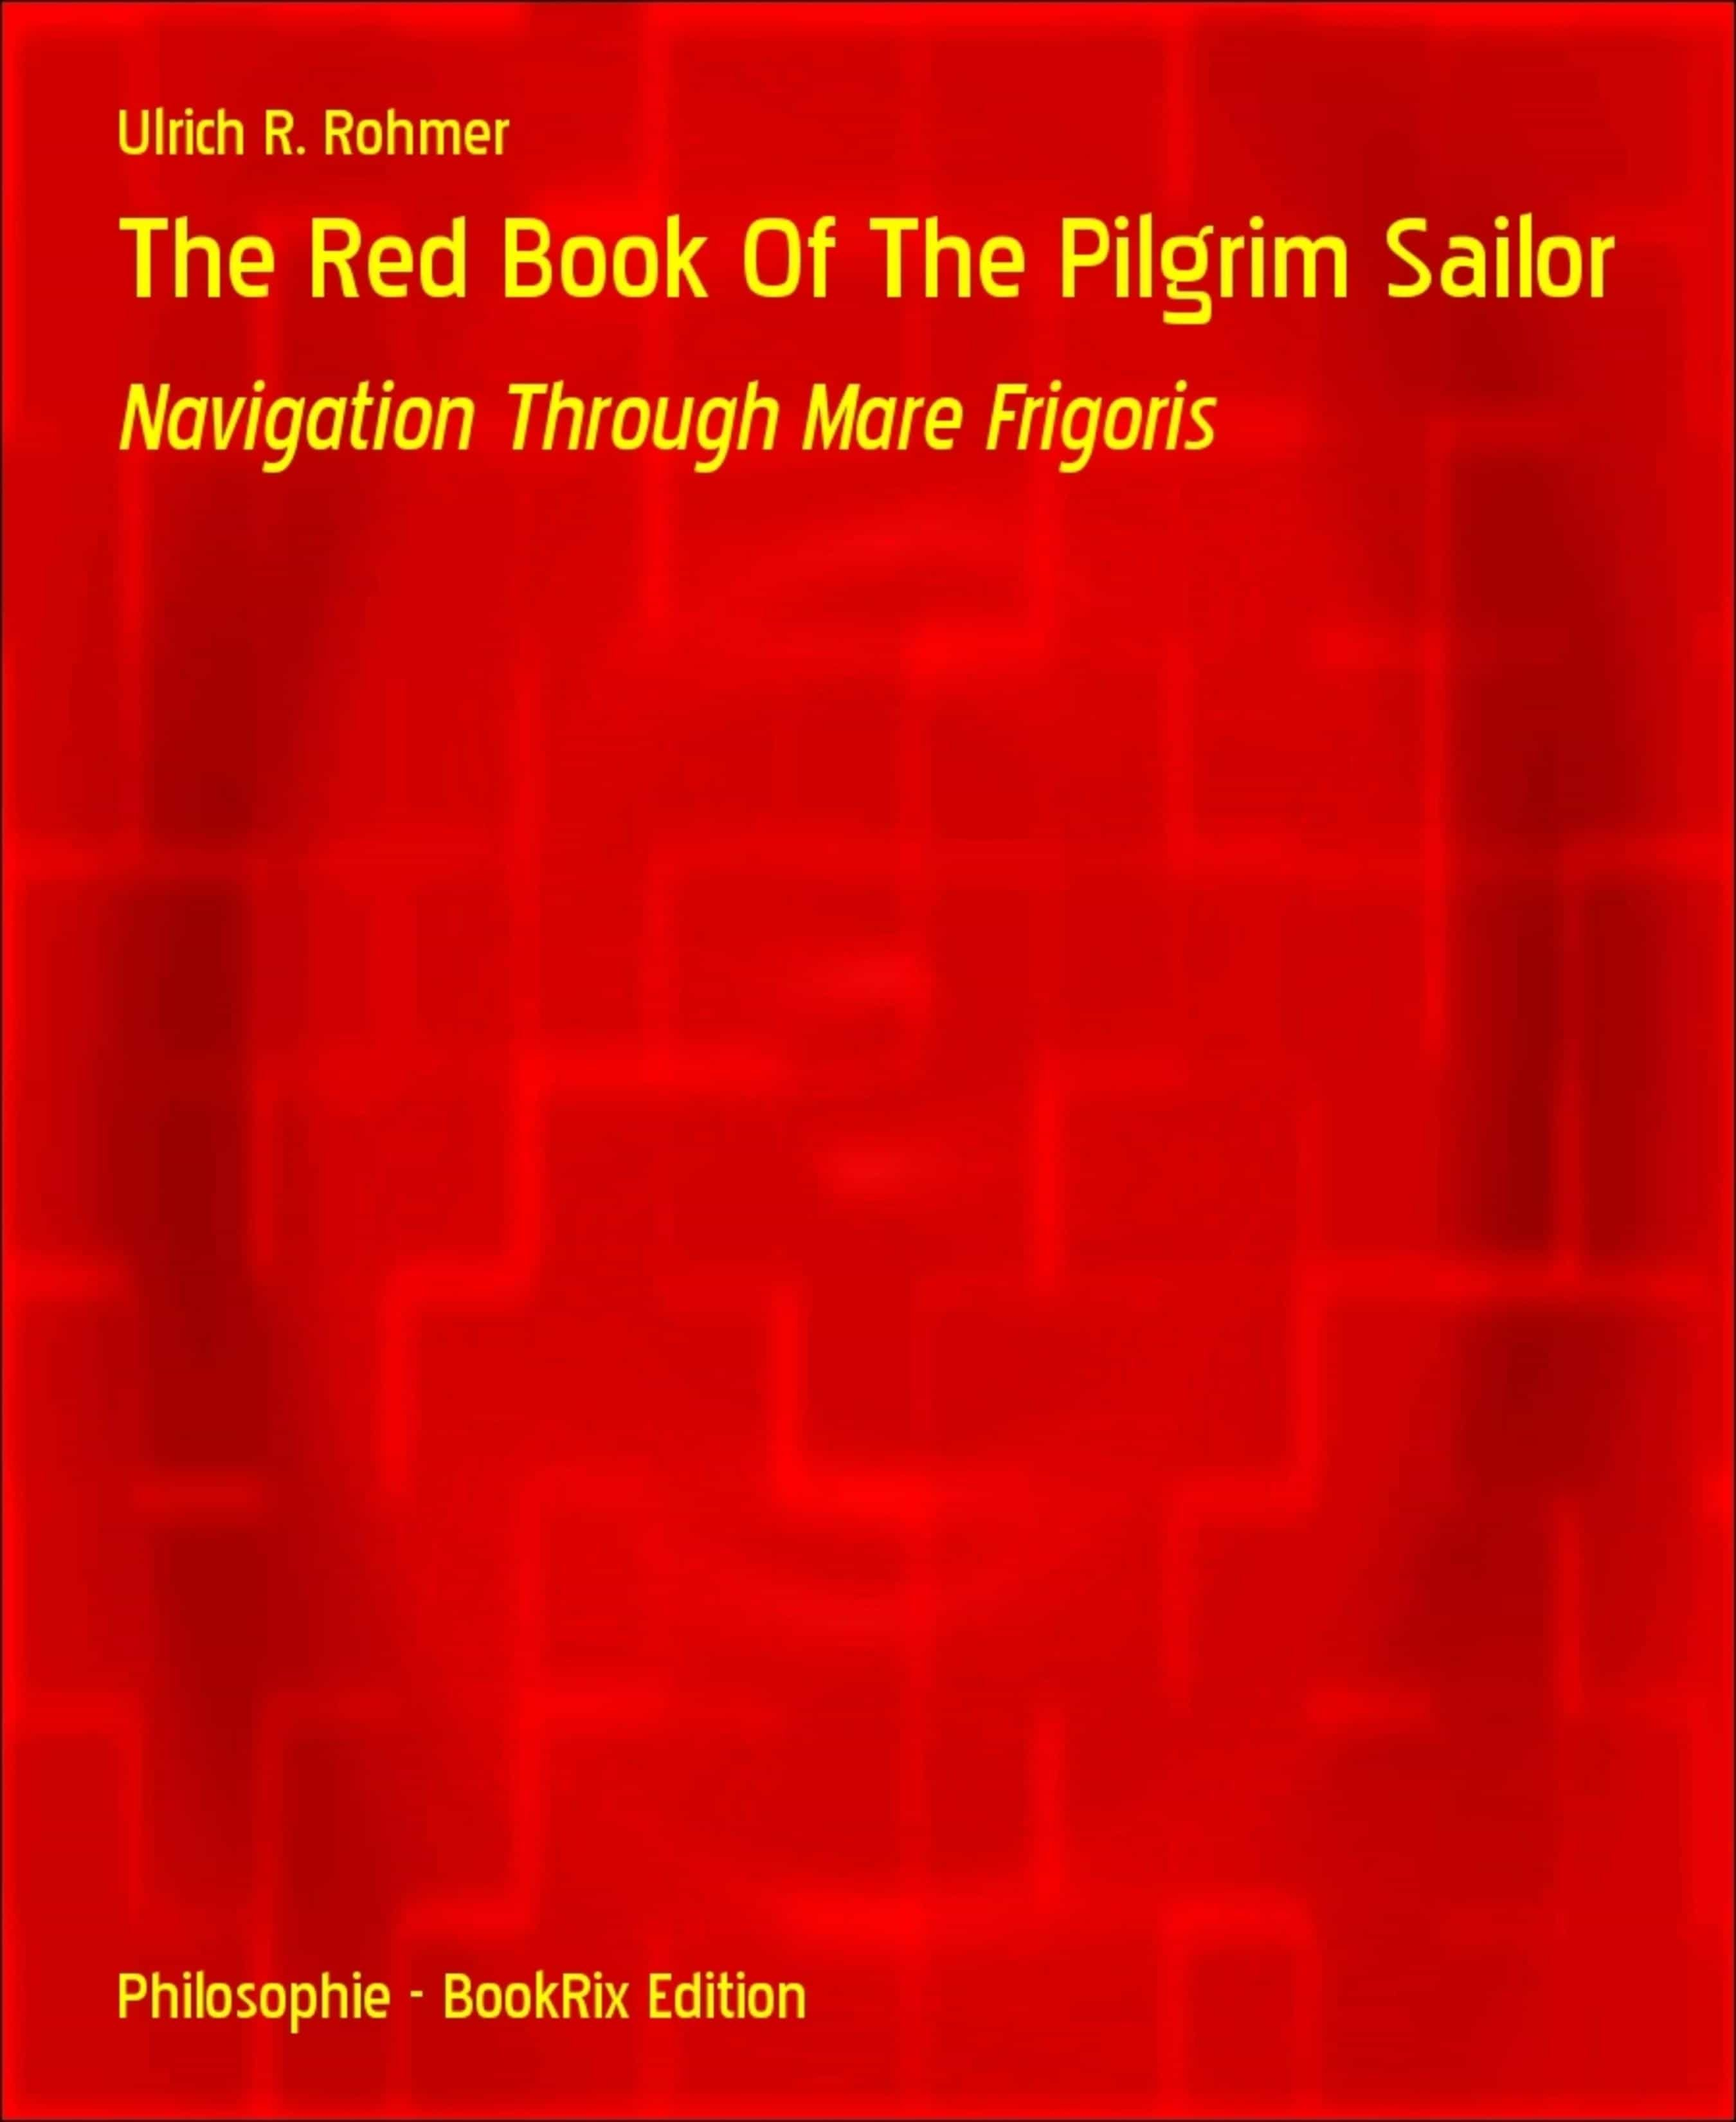 THE RED BOOK OF THE PILGRIM SAILOR